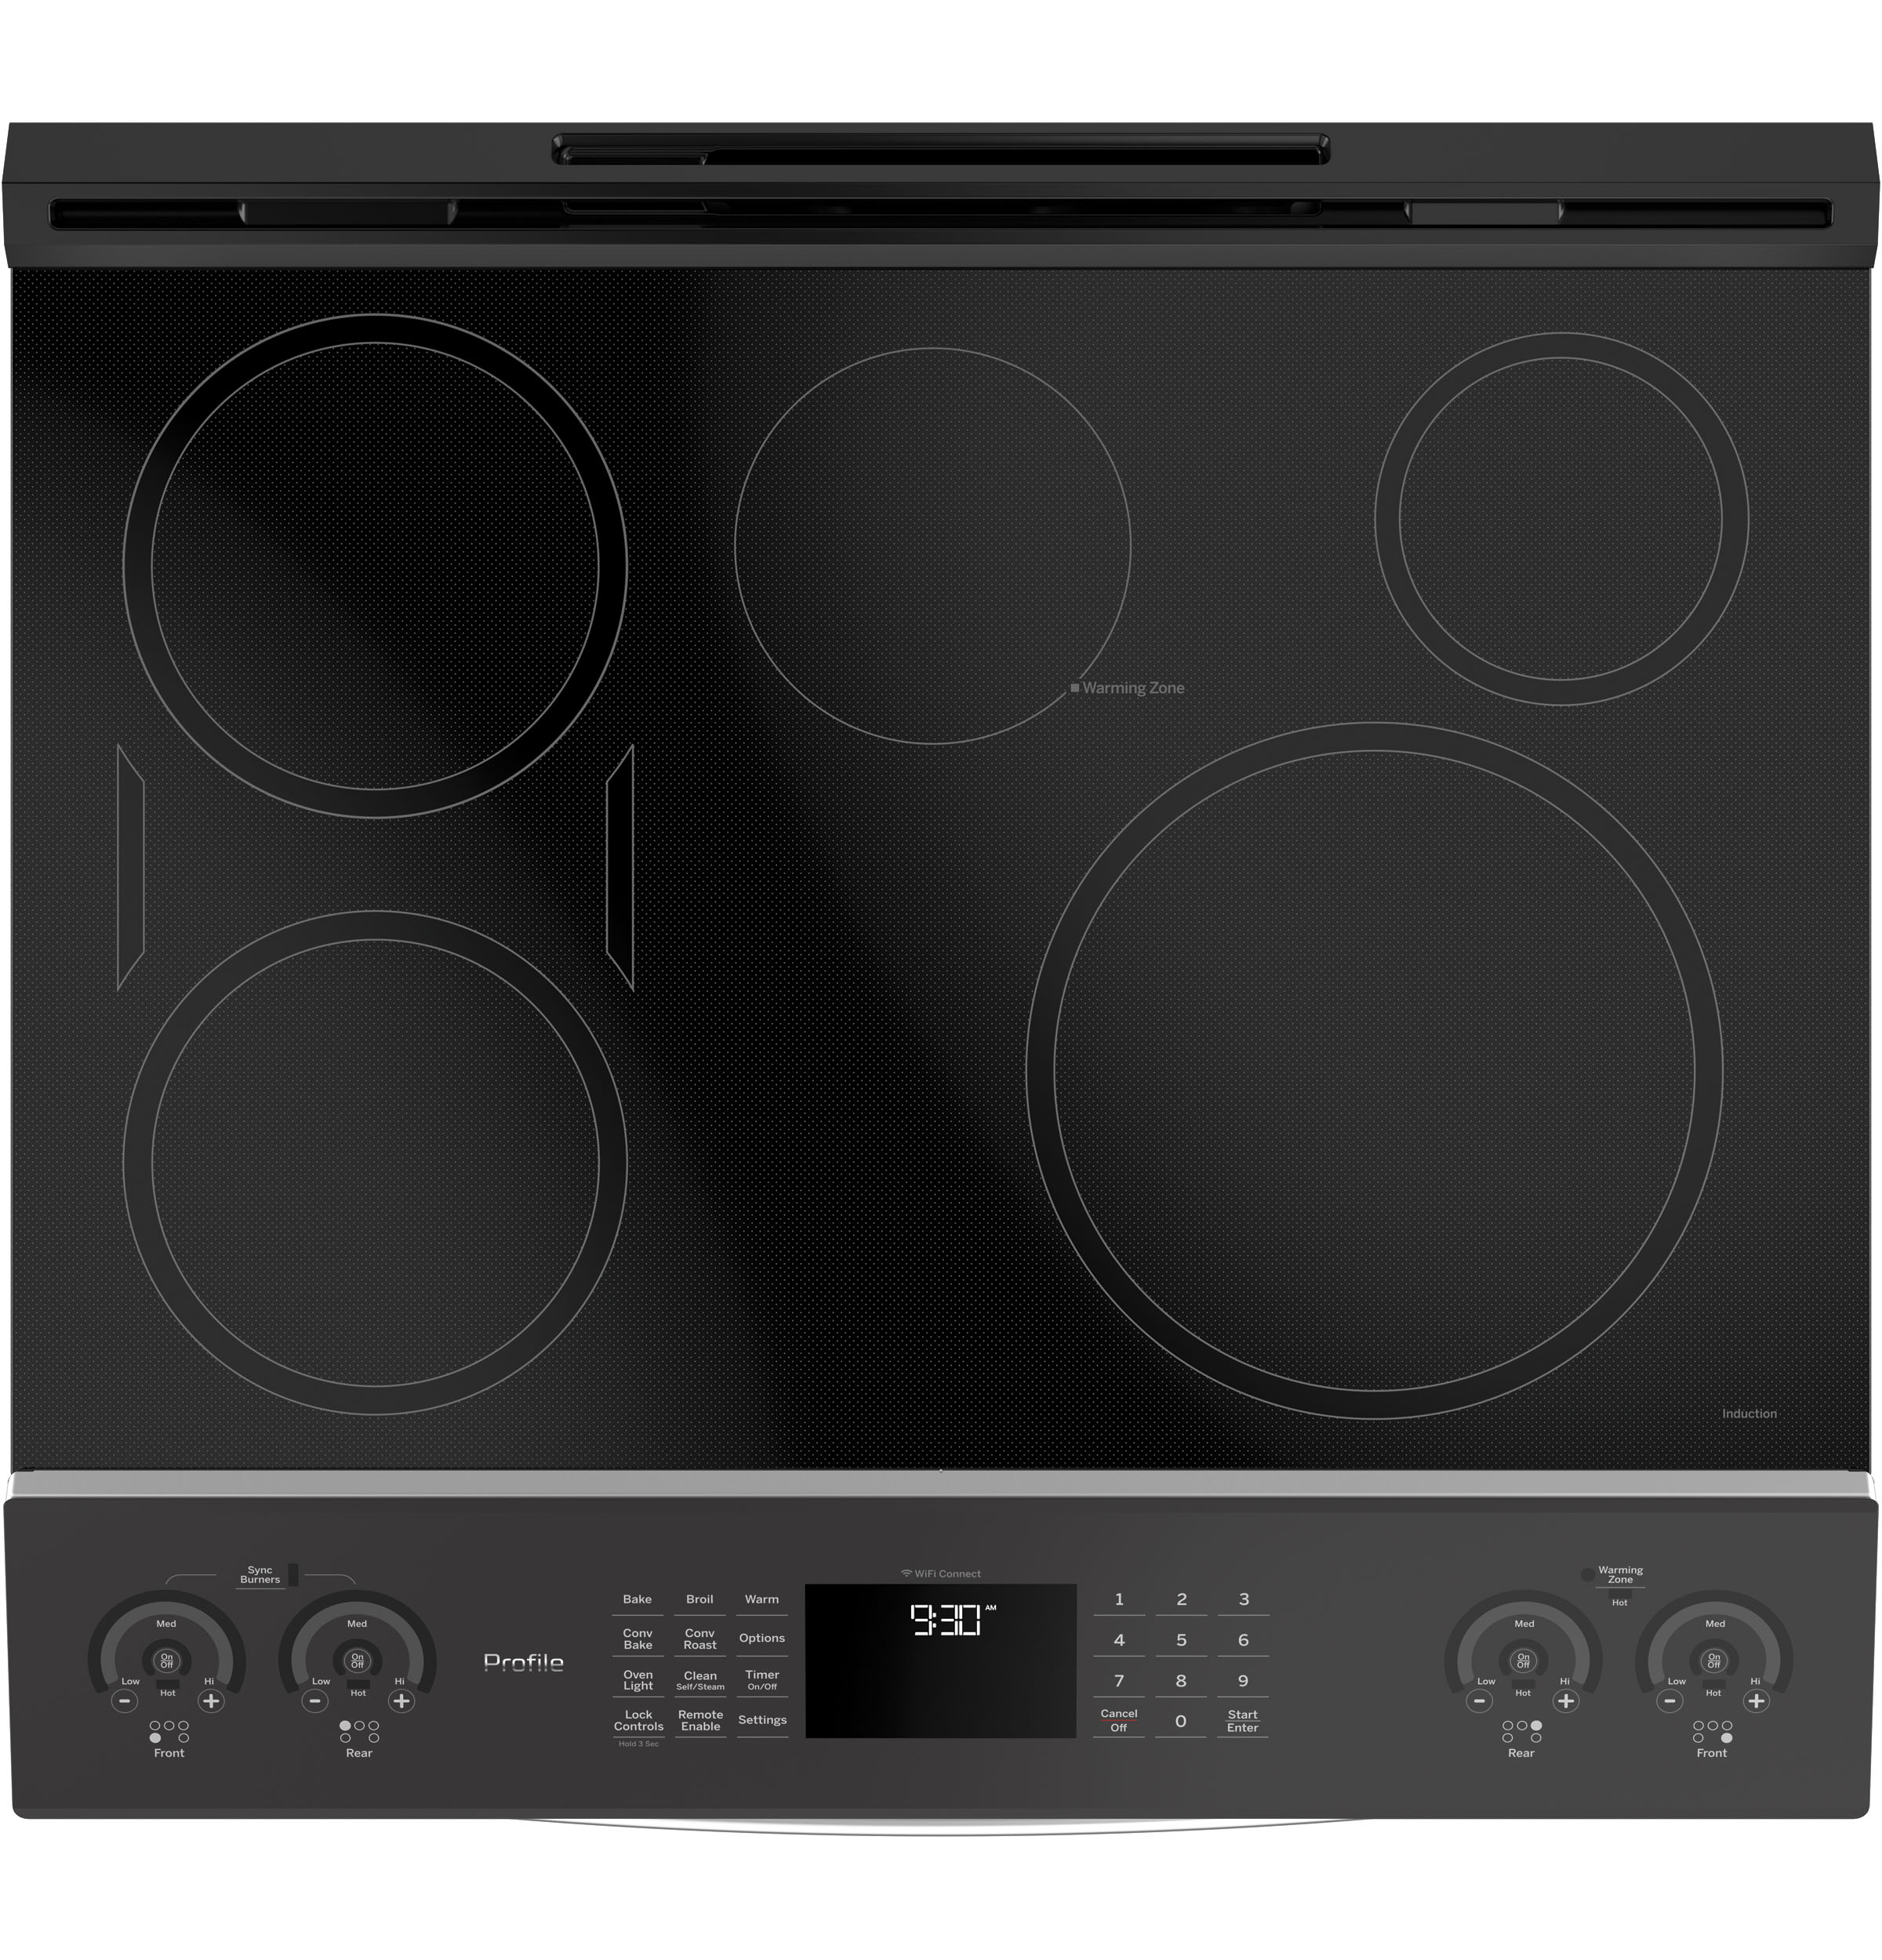 "Profile GE Profile™ 30"" Smart Slide-In Front-Control Induction and Convection Range"